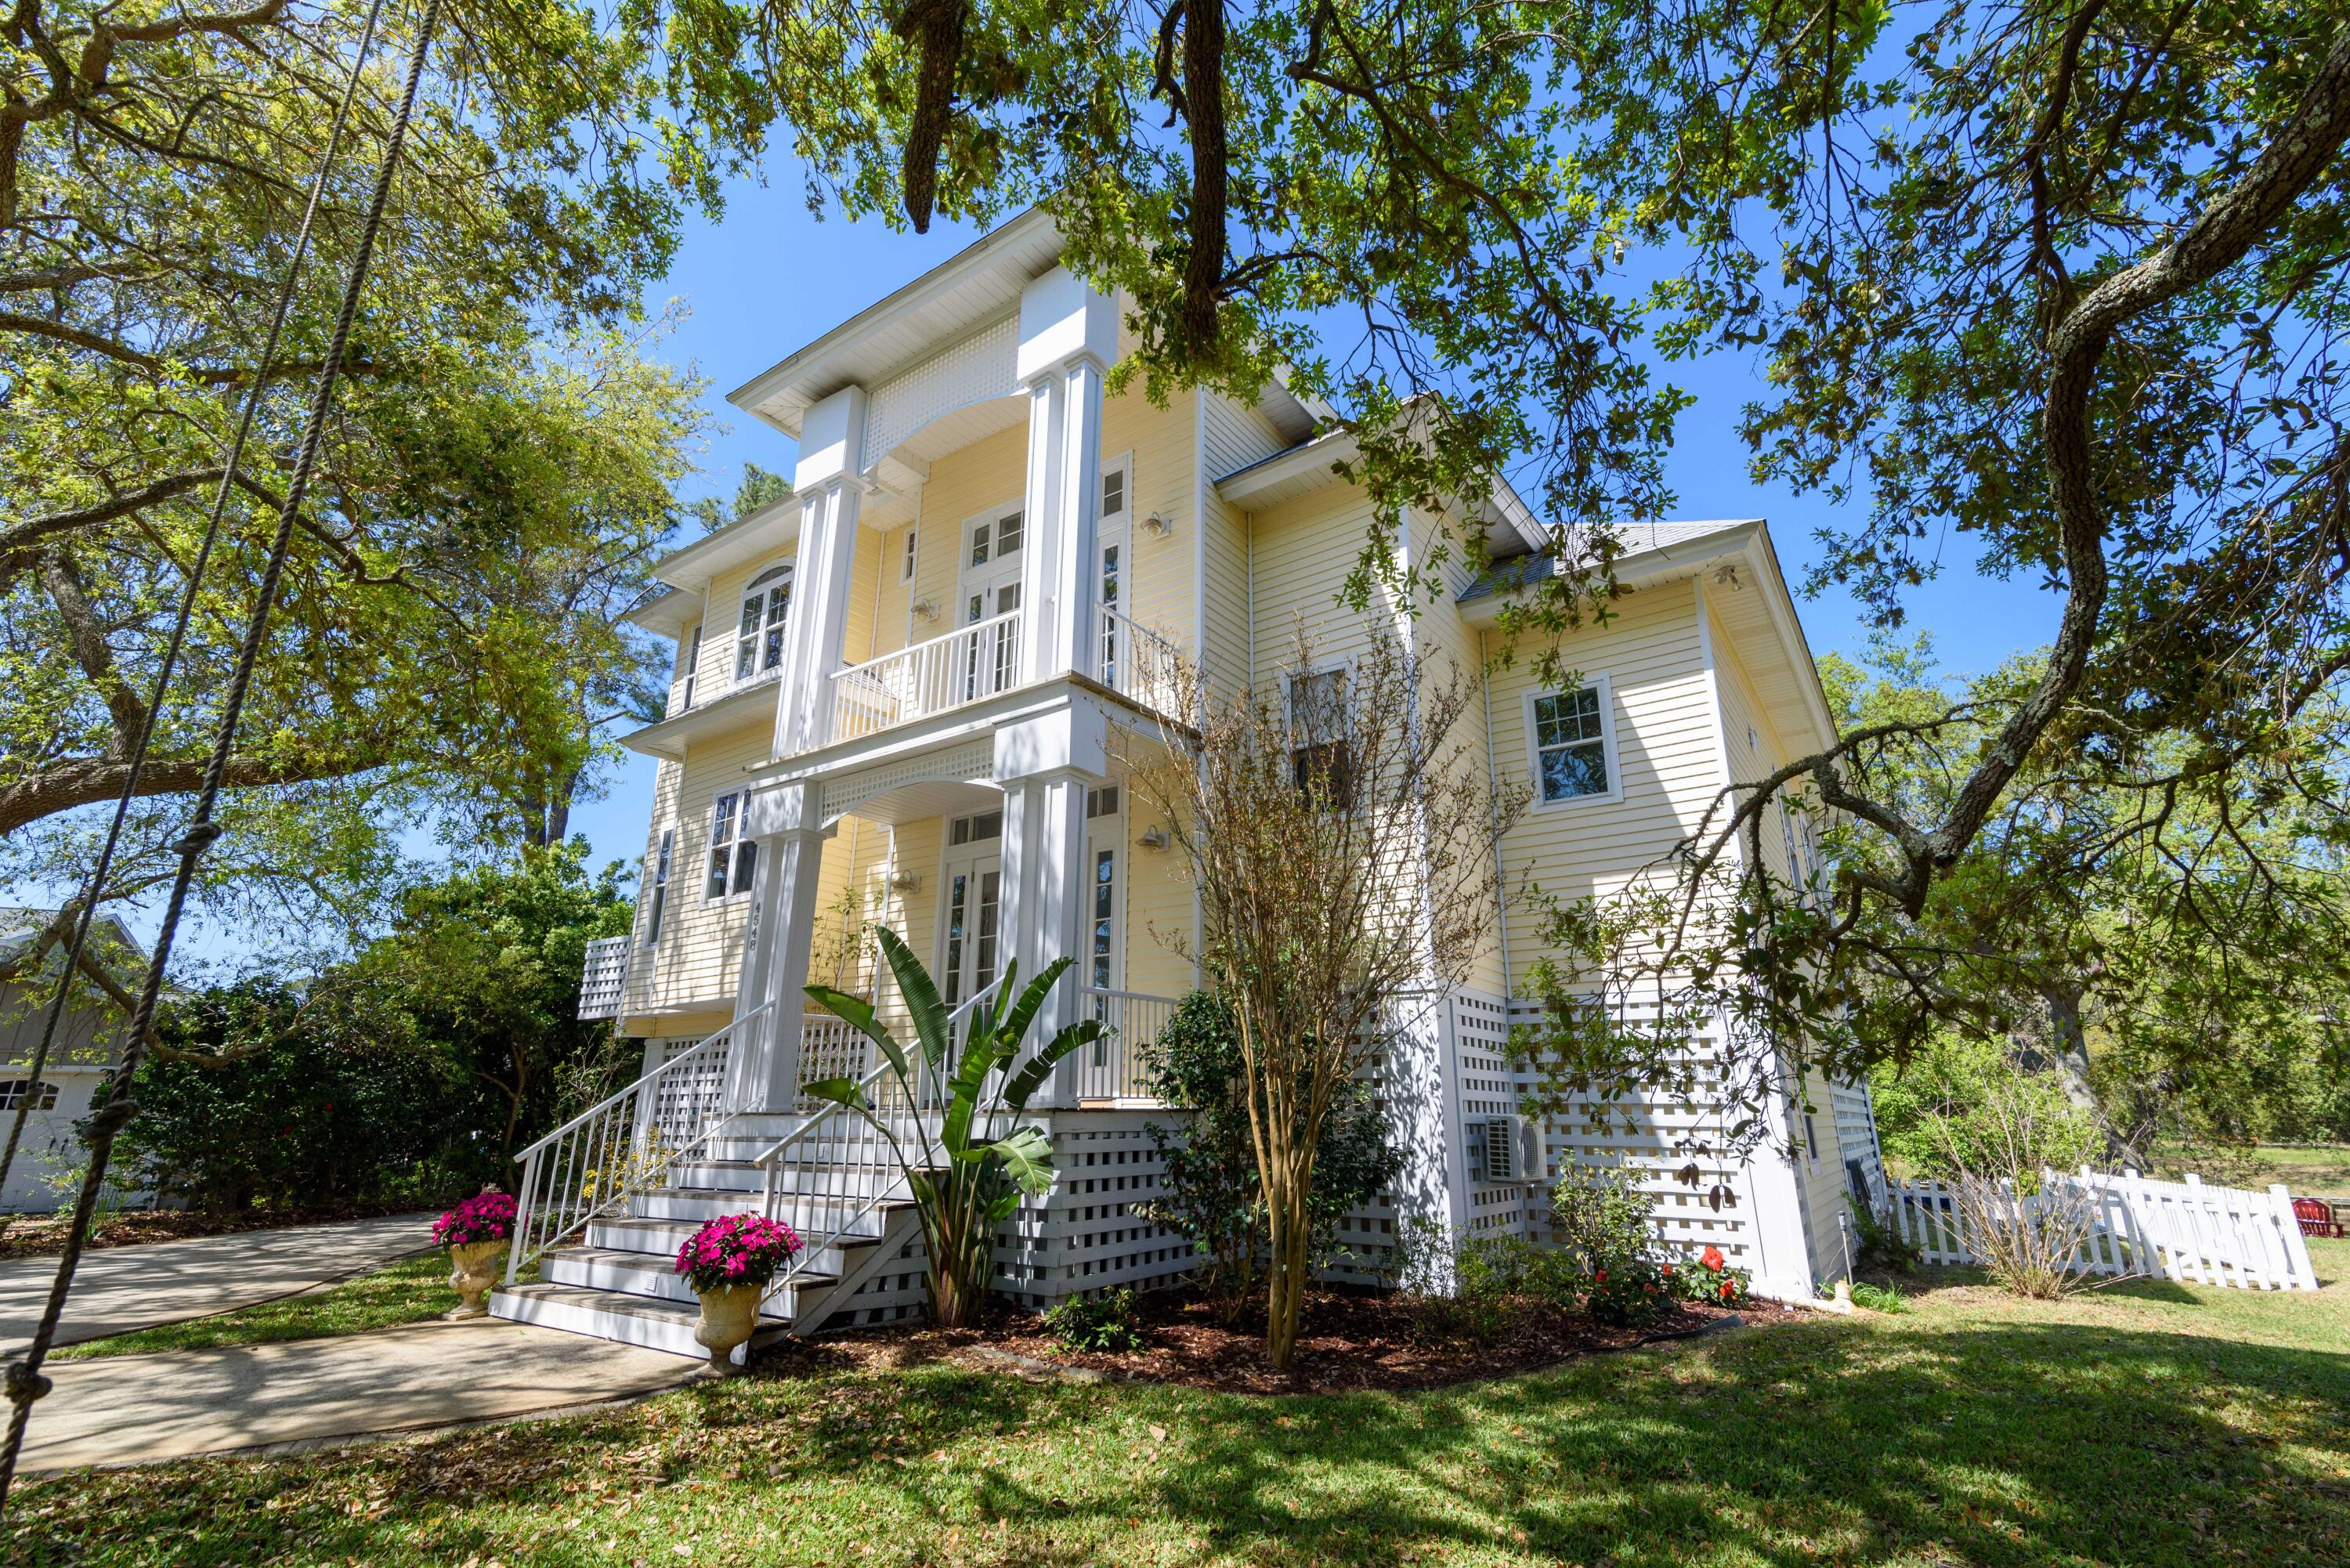 Located on a cul-de-sac just steps from the Santa Rosa Sound with 135 feet of deep water canal frontage, this home is the epitome for Florida living! You'll enjoy the 26 foot, 10,000 pound boat lift with boathouse, jet ski lift, 50 amp to dock and room for 2 additional large boats. This backyard oasis features an outdoor kitchen with built-in grill with mini fridge and microwave, large bar area perfect for entertaining with covered (33x22) and open lanai, outdoor shower, firepit and sizable back yard. The 2 car garage has a large additional workshop space and covered storage area (17x13). Also located on the bottom floor is a brand new addition. You'll find a bedroom with a kitchenette, bathroom with walk-in shower and mini split HVAC. This space would make for a good guest or in-law space  or even an Airbnb. On the main living floor, you'll find the master suite, kitchen and living space with water views from every window. The kitchen comes equipped with granite counter tops, gas cooktop, breakfast bar and stainless appliances. Just off the kitchen is the dining room and spacious living room with a fireplace and cathedral ceilings. You'll enjoy the ample natural light throughout the home as well as the custom Eastern White Pine hardwood flooring imported from New York. The master suite has French doors with a separate entrance to the covered balcony providing water views and the bathroom has a walk-in shower with 2 shower heads, heat lights, double granite vanity, urinal and a large walk-in closet. The 3rd floor has 2 additional bedrooms and full bathroom with a shower-tub combo. Other notables are IMPACT GLASS, large balcony with dining and living area on second floor just off the main living area, office nook just off the kitchen, powder room, recessed lighting, surround sound, crown molding, beautiful oak trees, and second bedroom upstairs has a private balcony overlooking the water. Check out or full video tour on the MLS and YouTube.